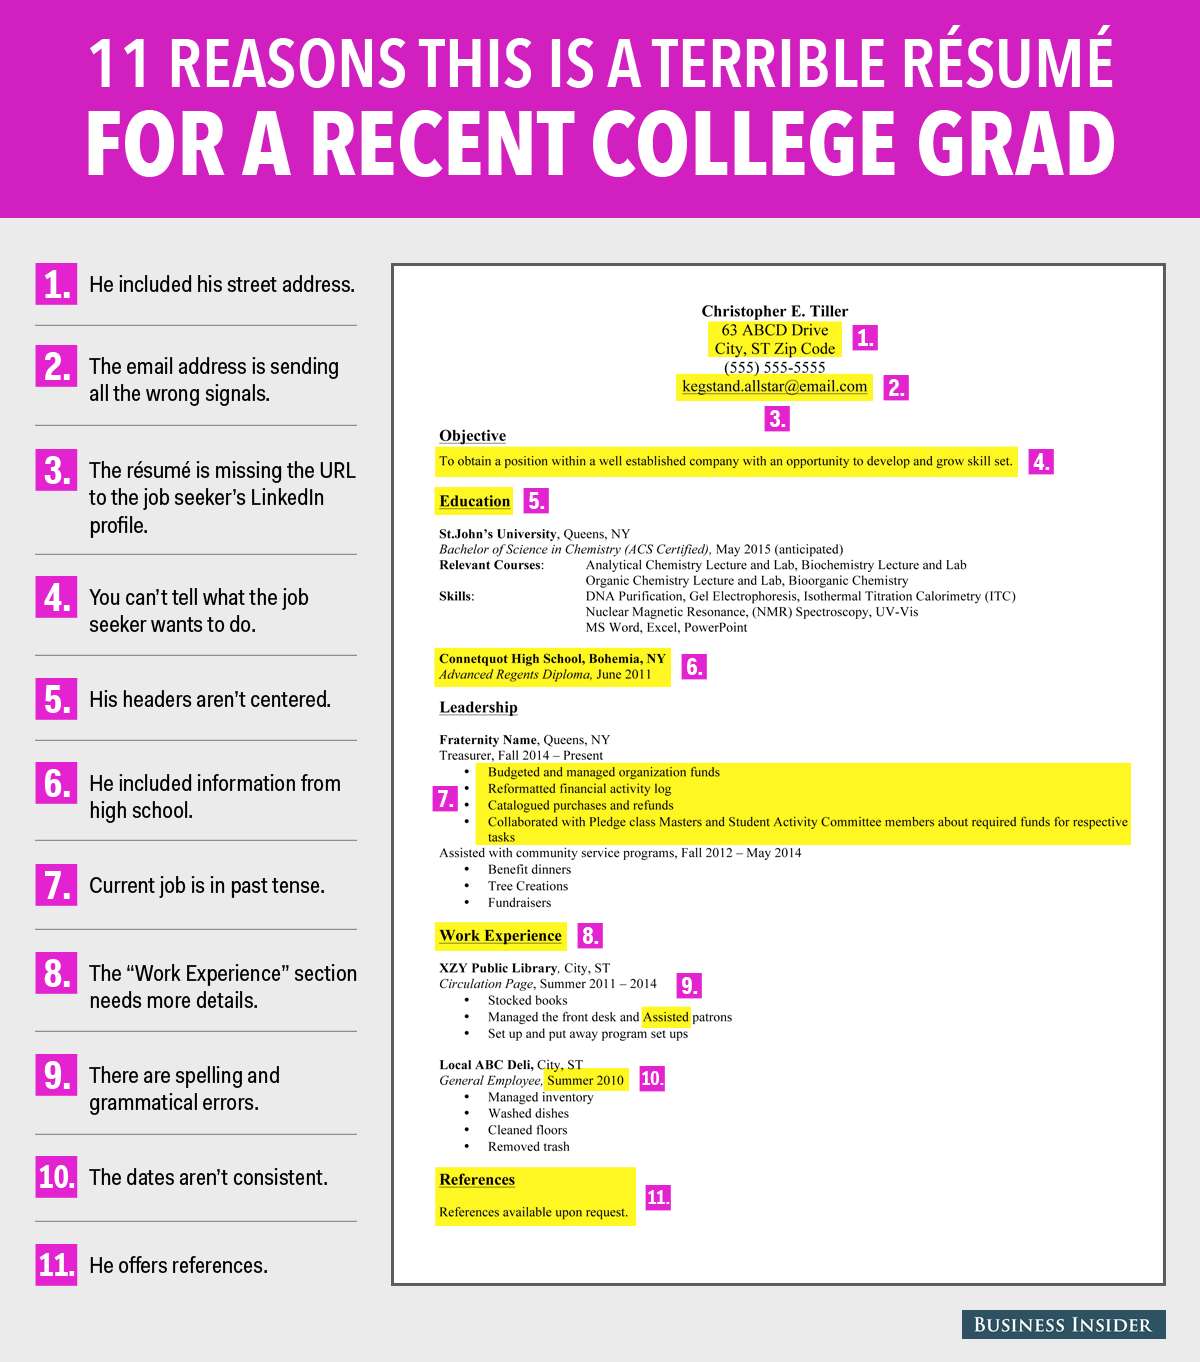 11 reasons this is a terrible rsum for a recent college grad in professional development curated by t - Best Jobs For Recent College Graduates